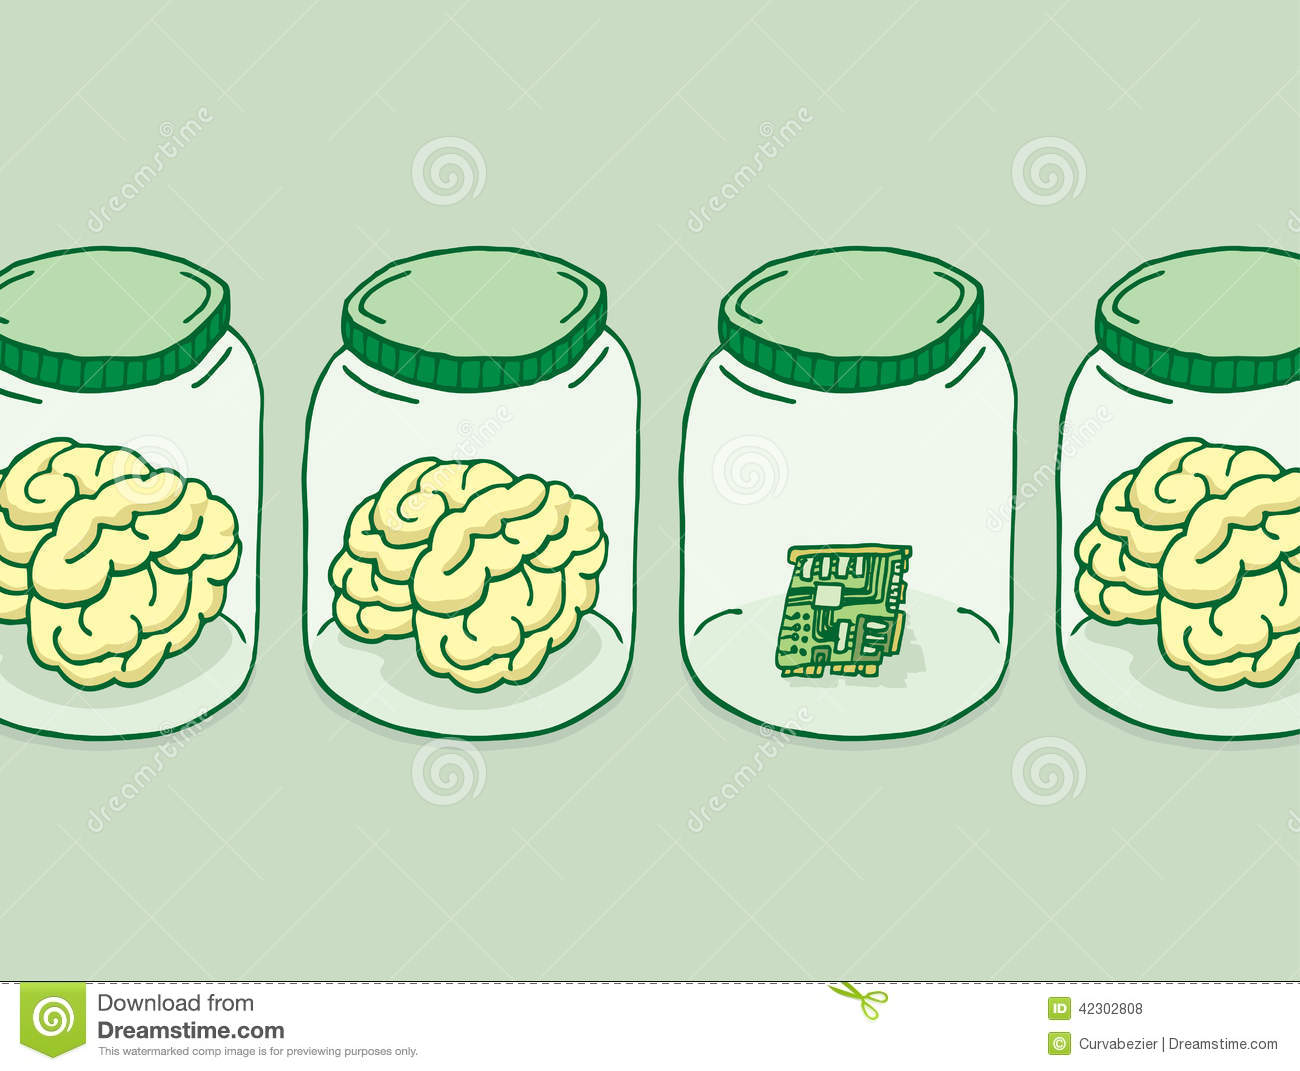 Stock Illustration Artificial Intelligence Digital Brain Cartoon Illustration Besides Brains Jars Image42302808 on tower bridge cartoon